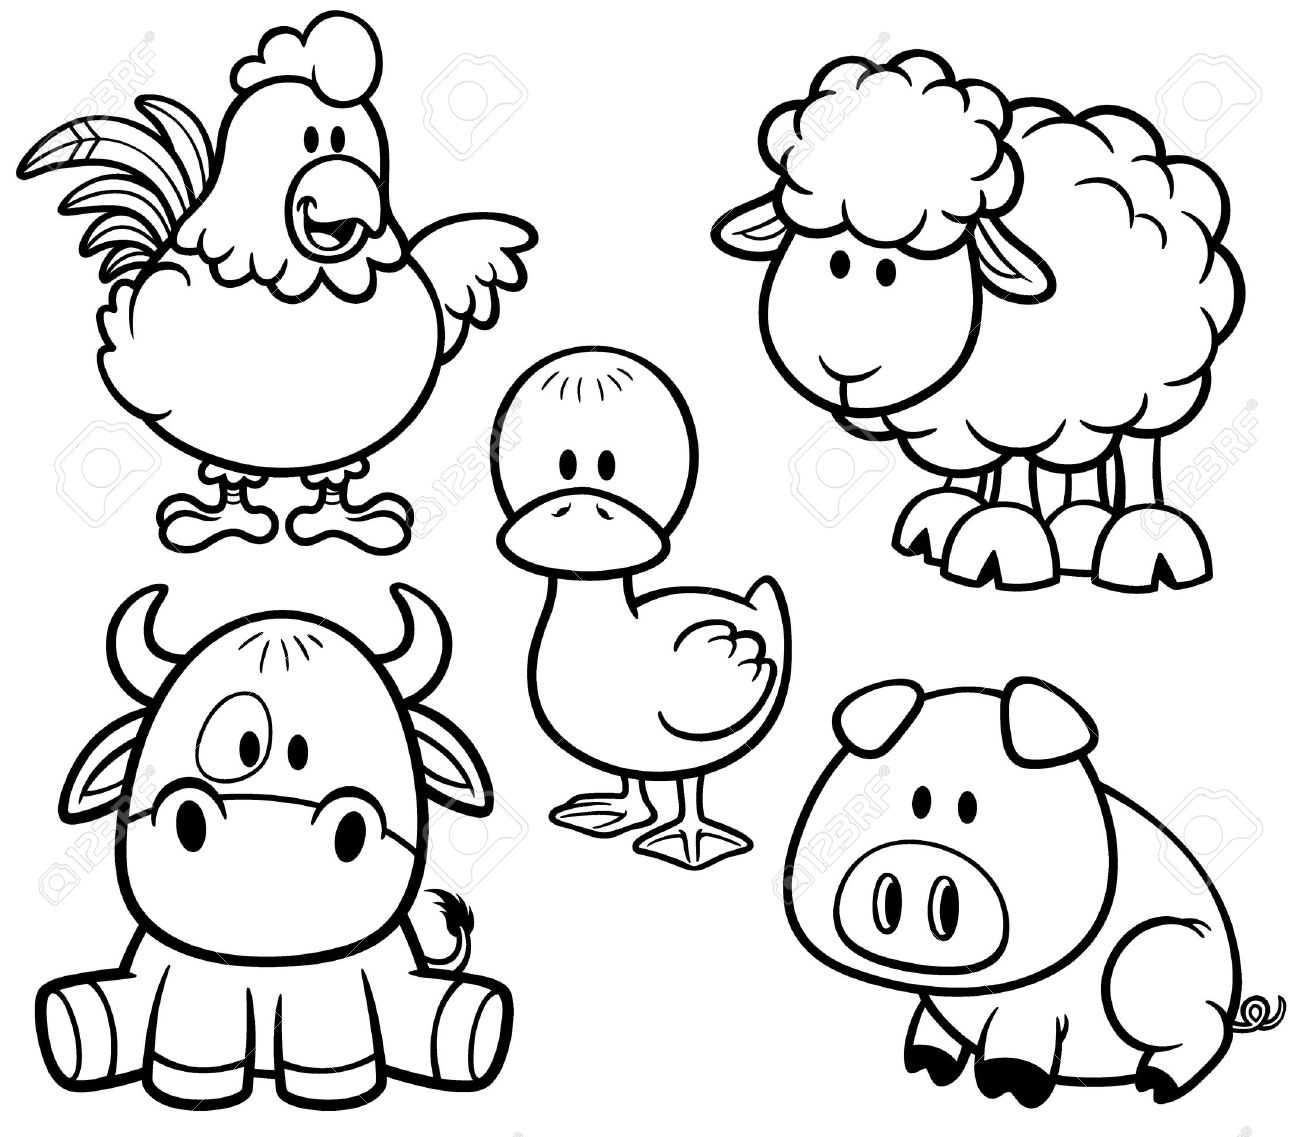 farm animals pictures printable free printable farm animal coloring pages for kids animals pictures farm printable